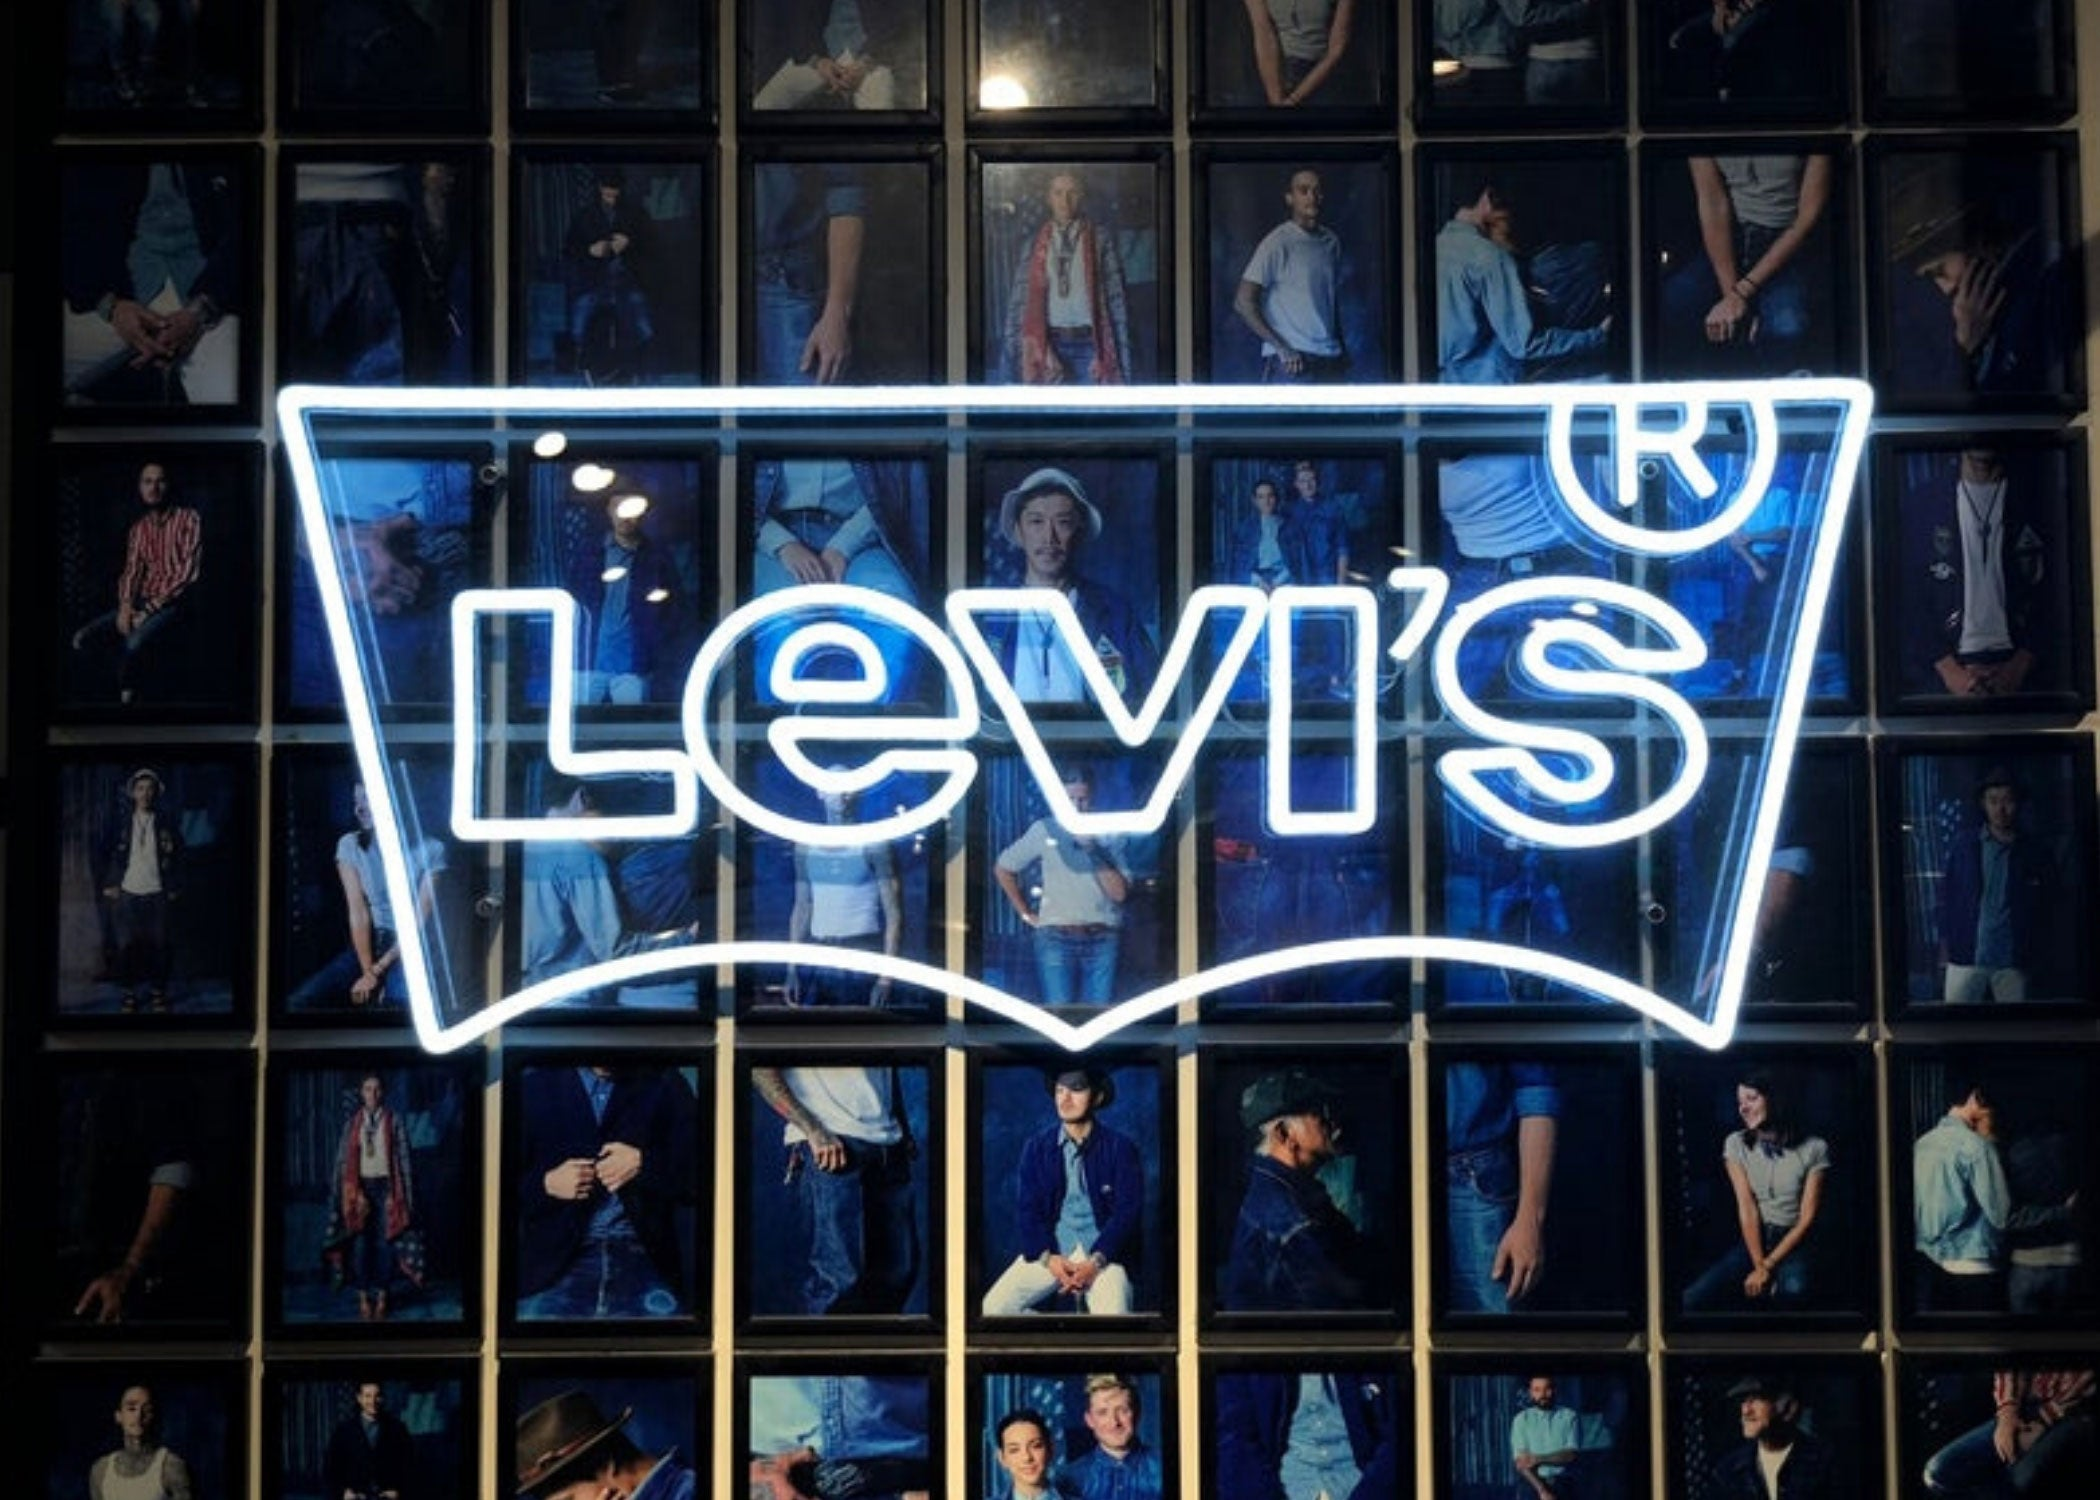 custom neon sign for business levis shop mk neon